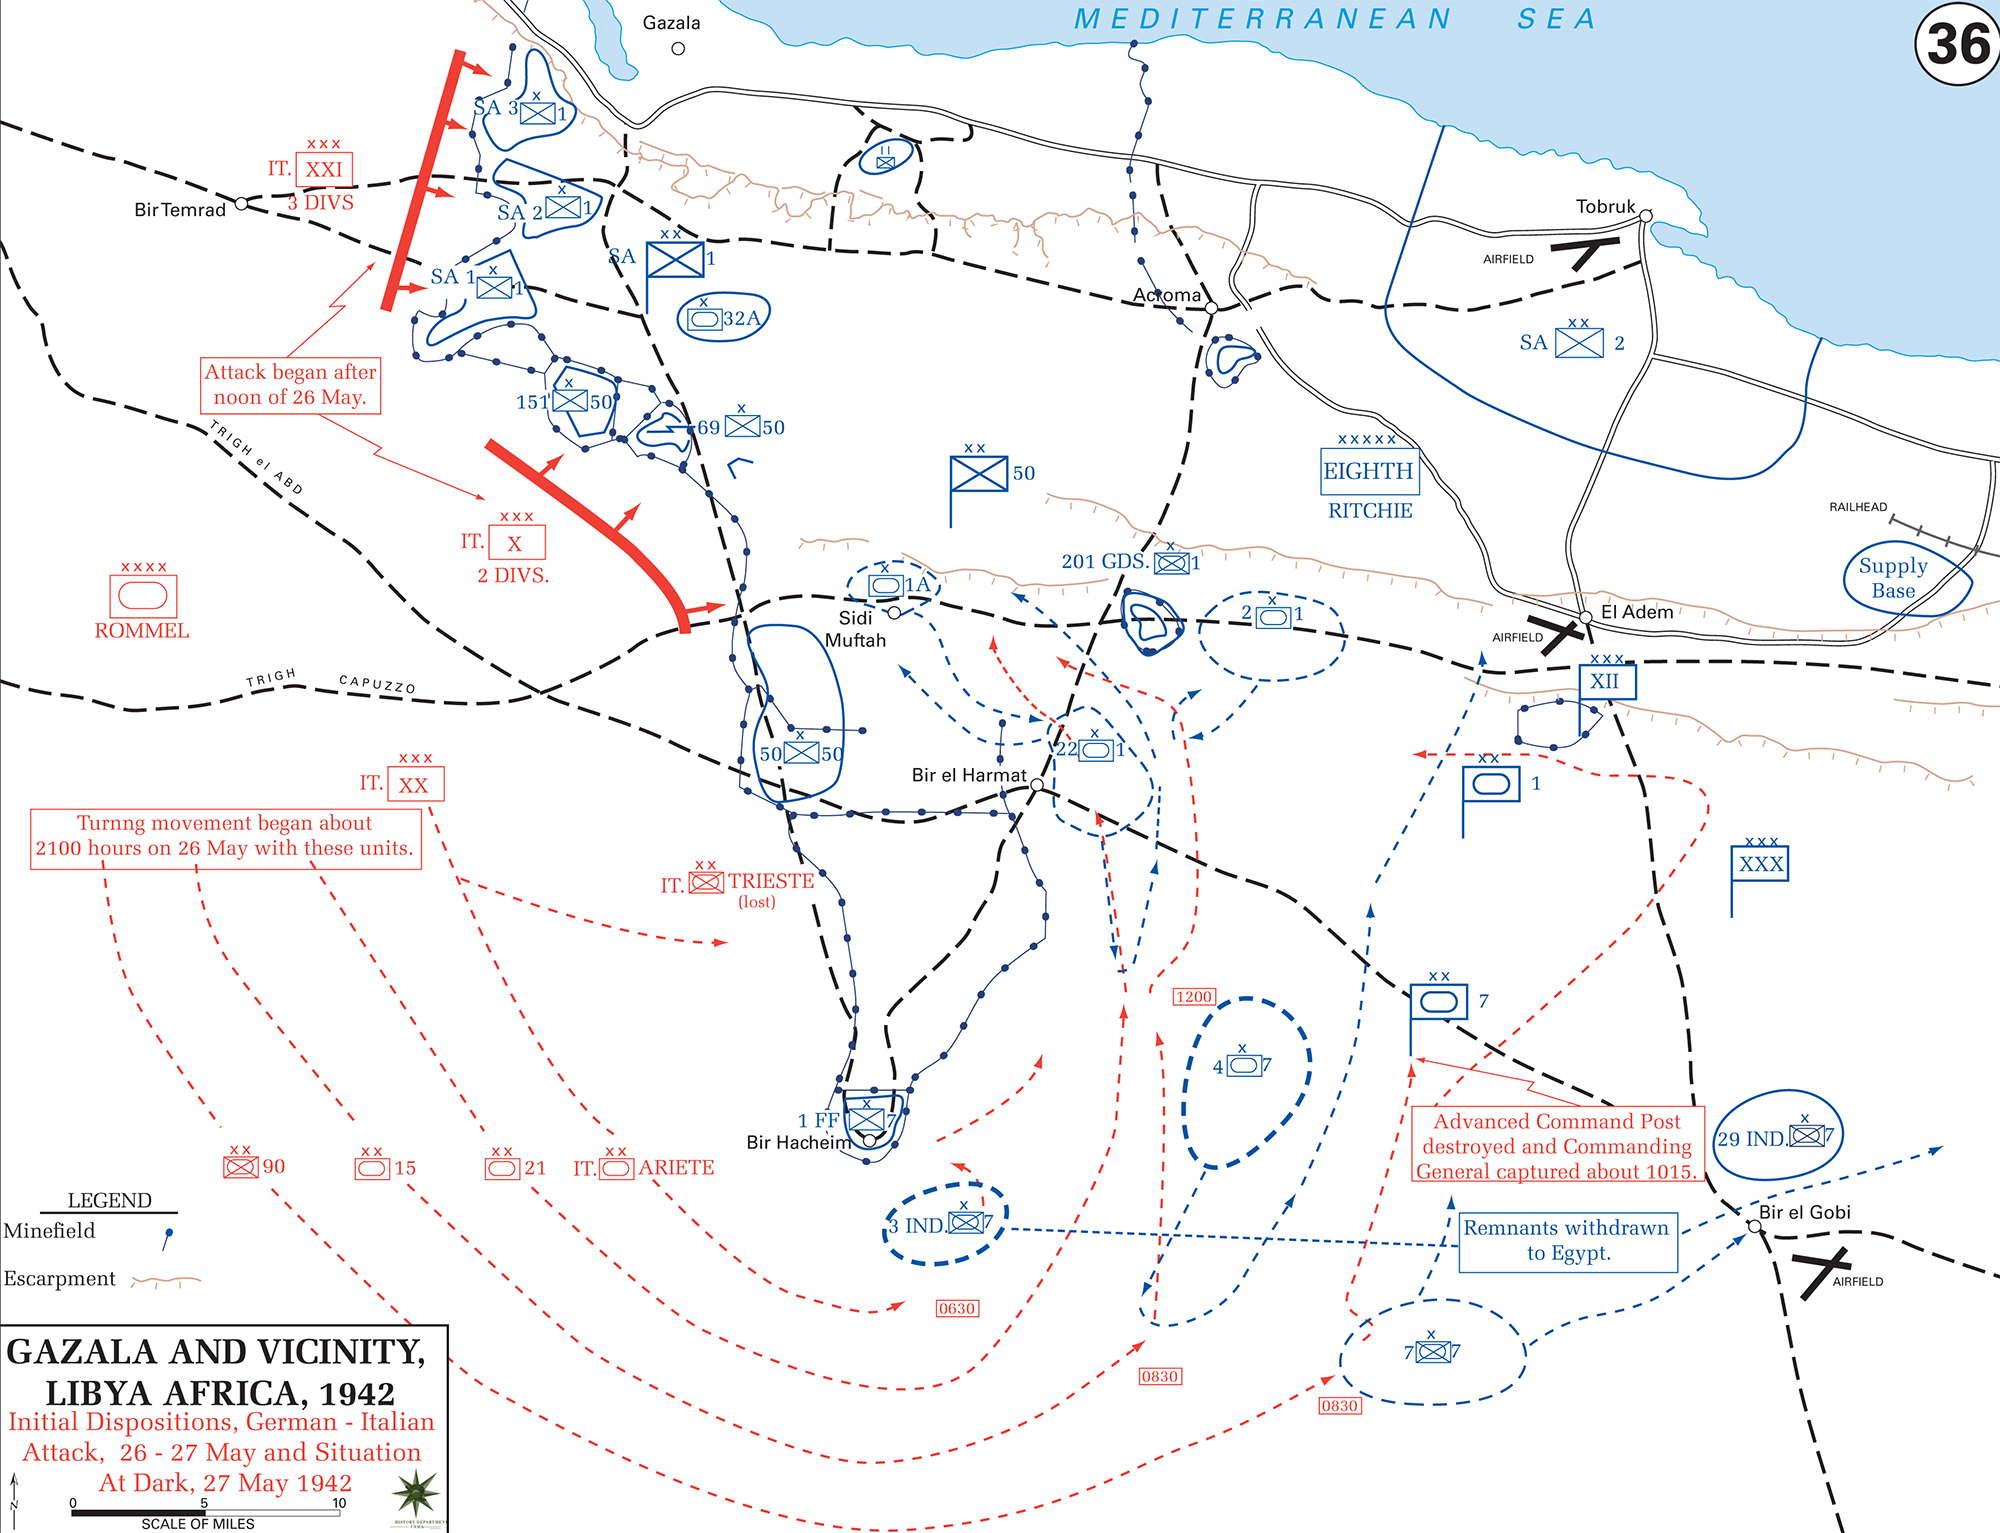 Map of WWII Gazala and Vicinity, Libya, North Africa 1942 - German-Italian Attack May 26-27, 1942